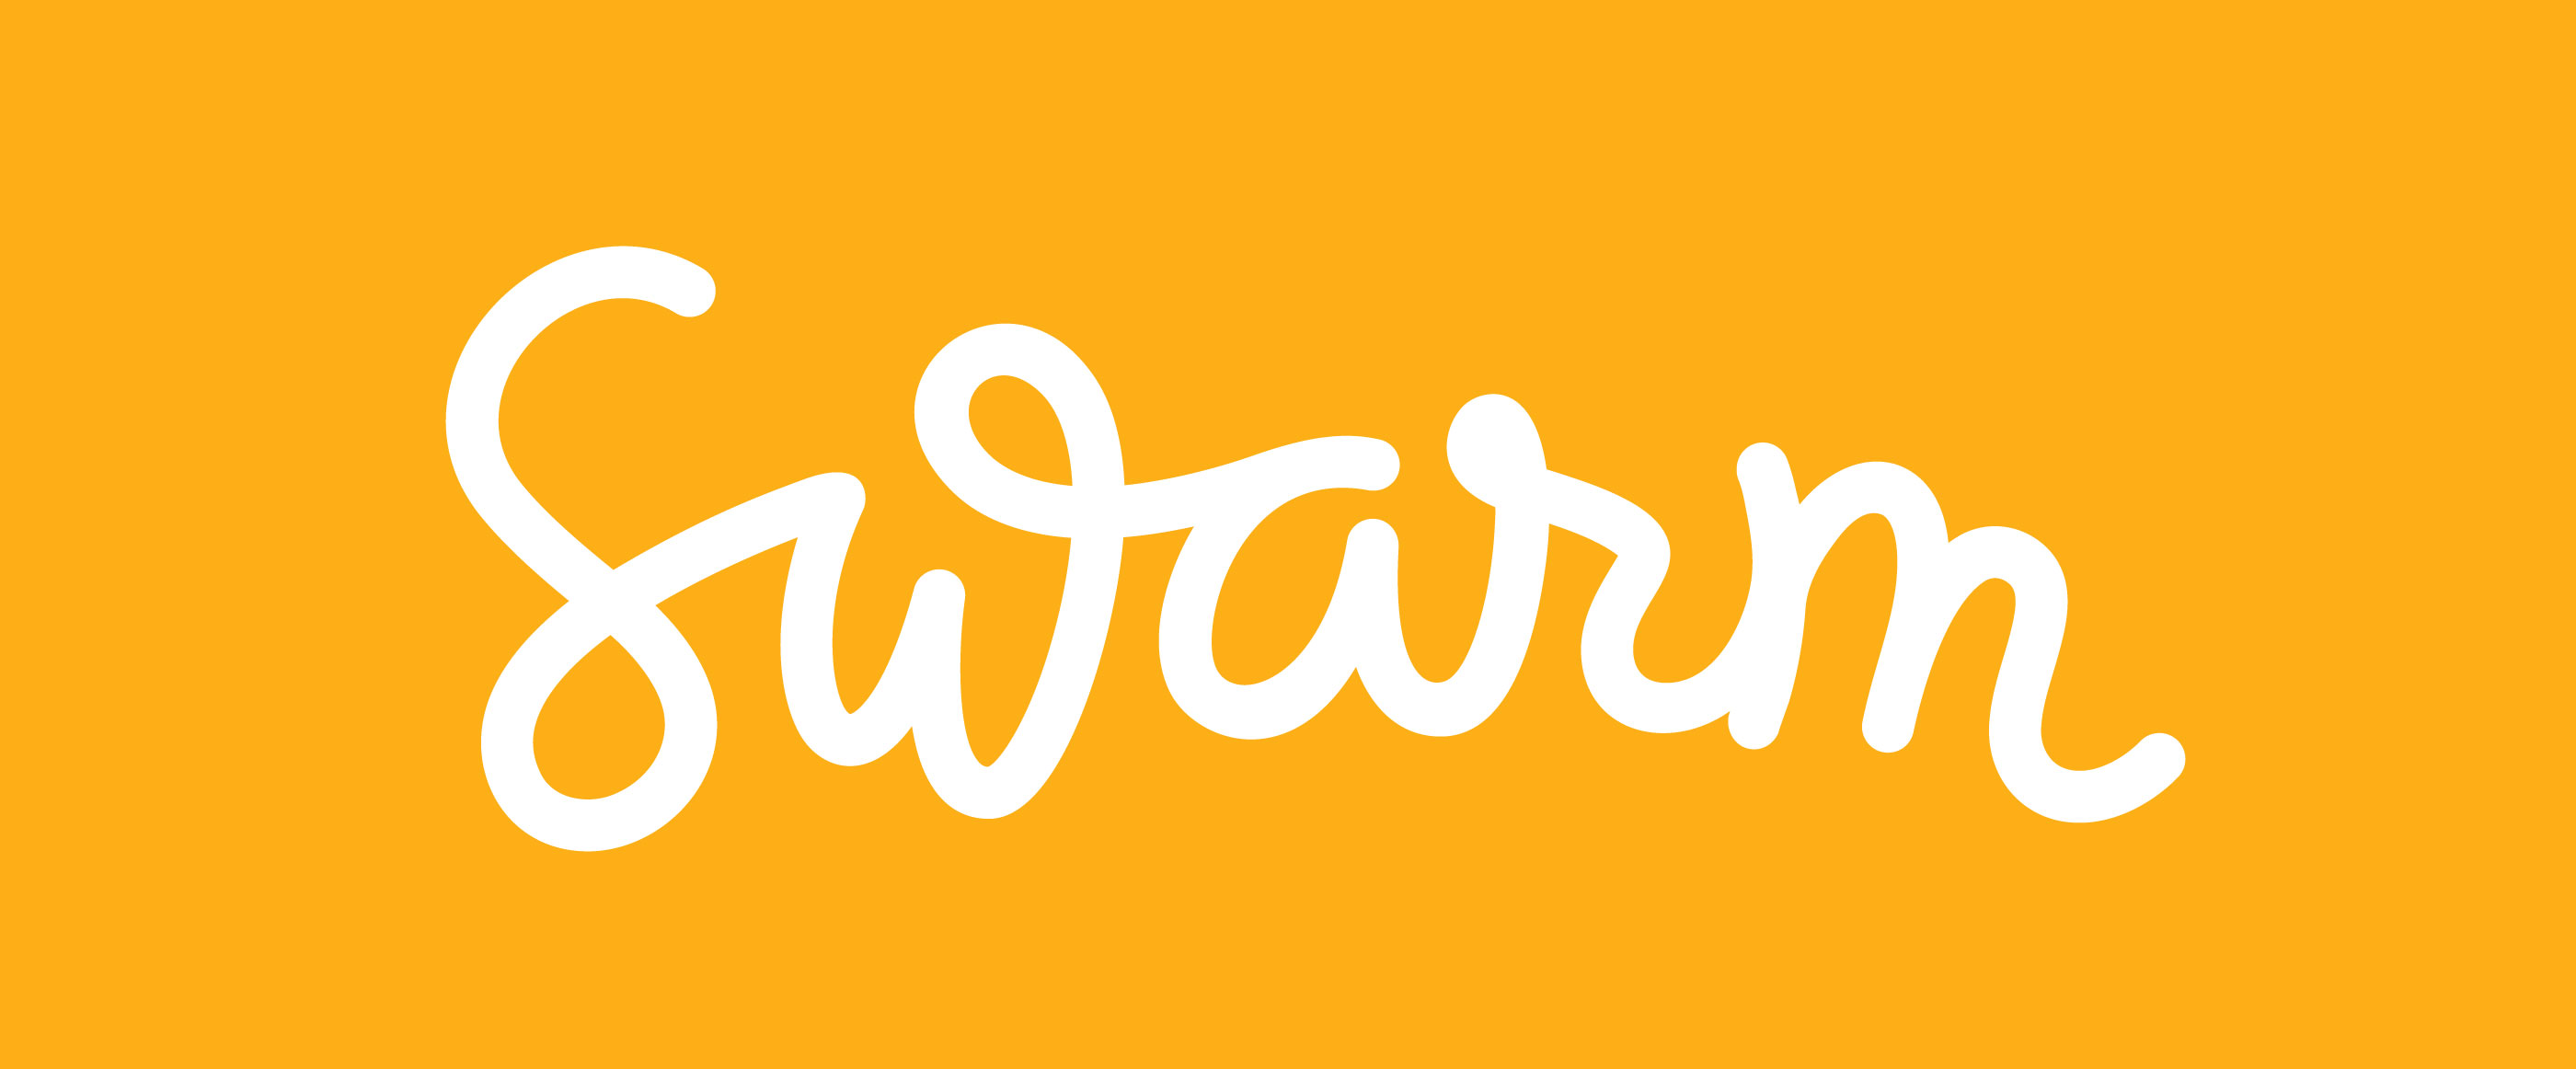 Foursquare Reveals Swarm Planning, Neighborhood Sharing, Search